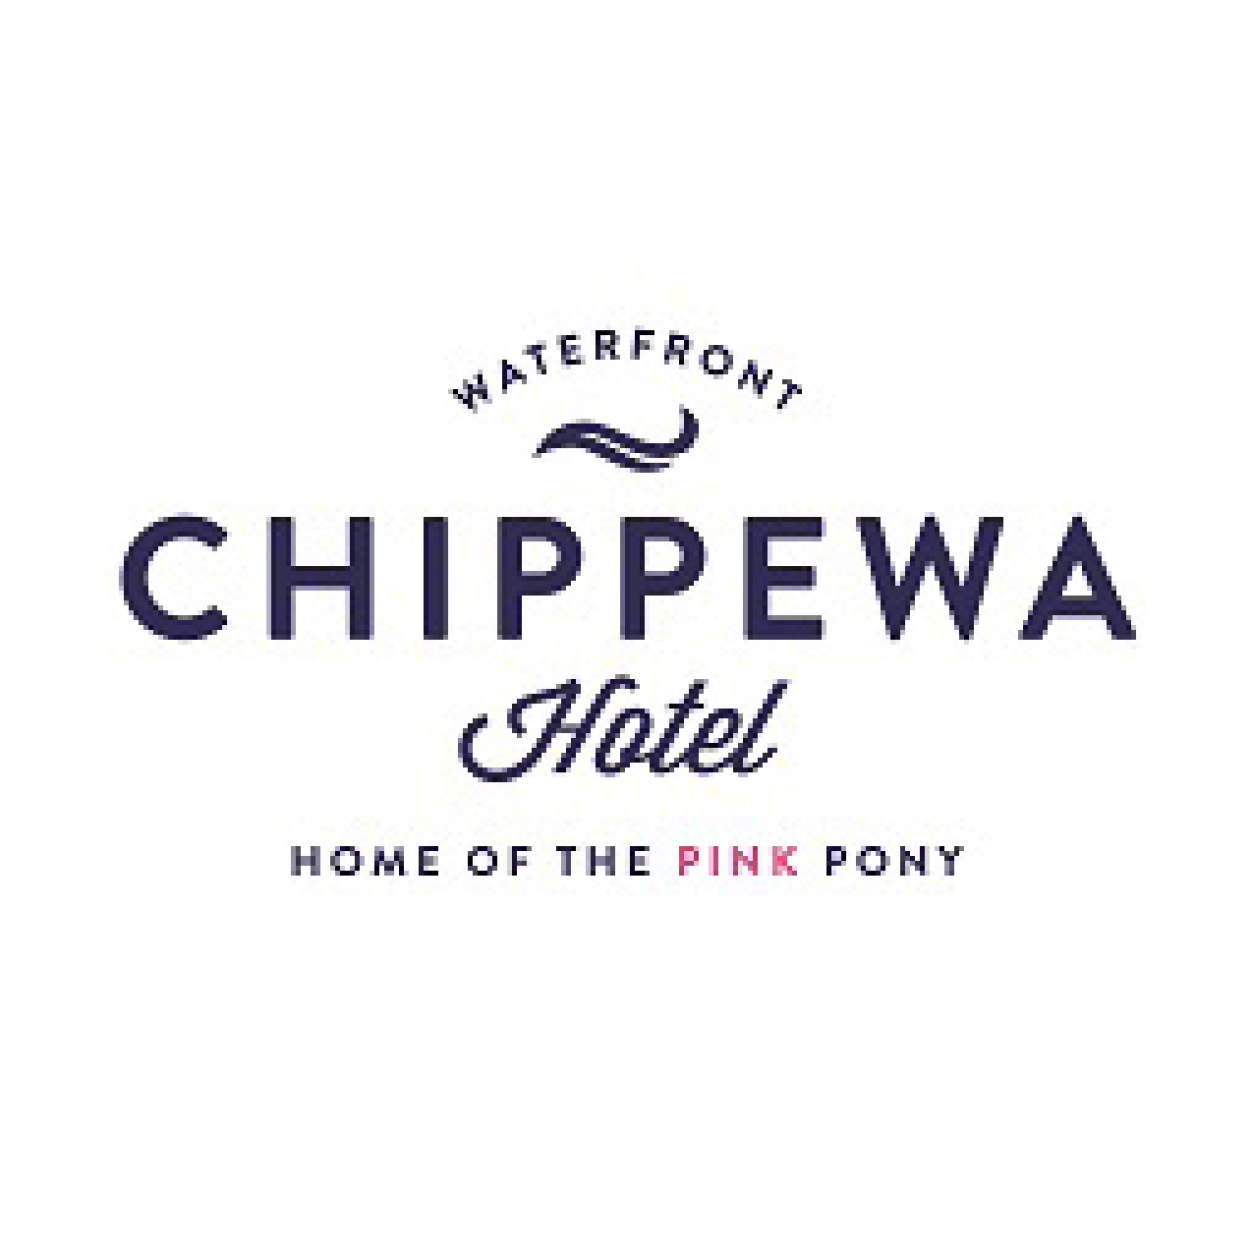 ChippewaHotelLogo